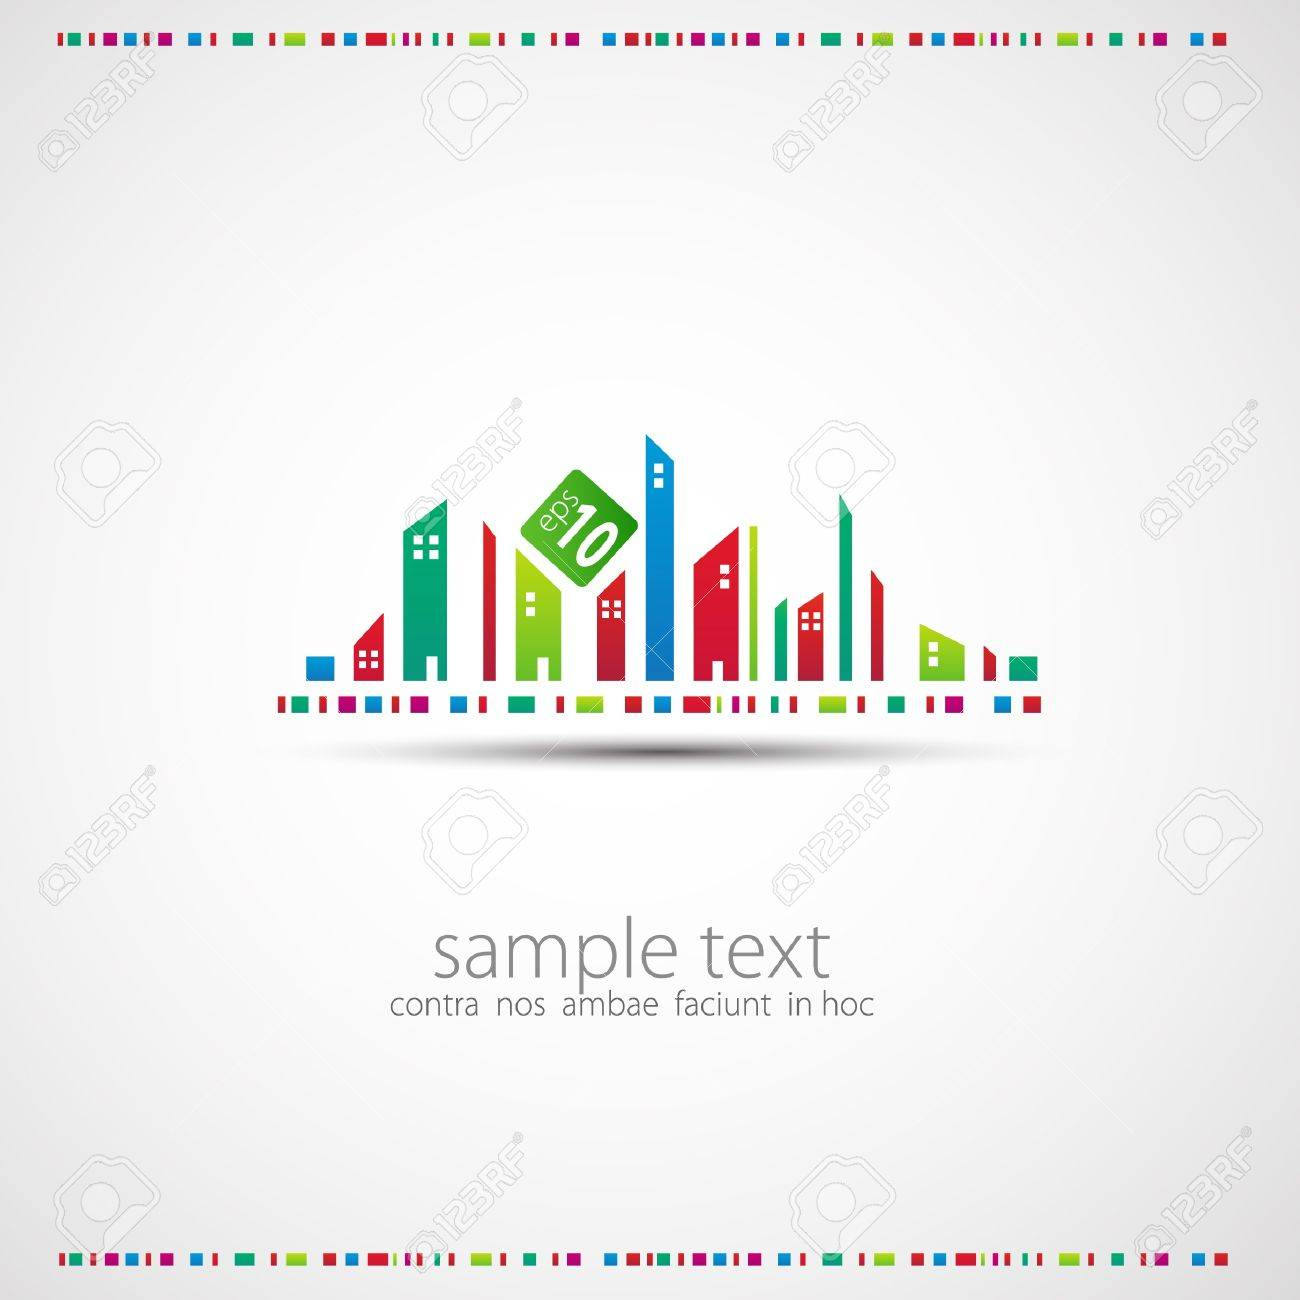 Abstract background. City theme. Stock Vector - 11057147